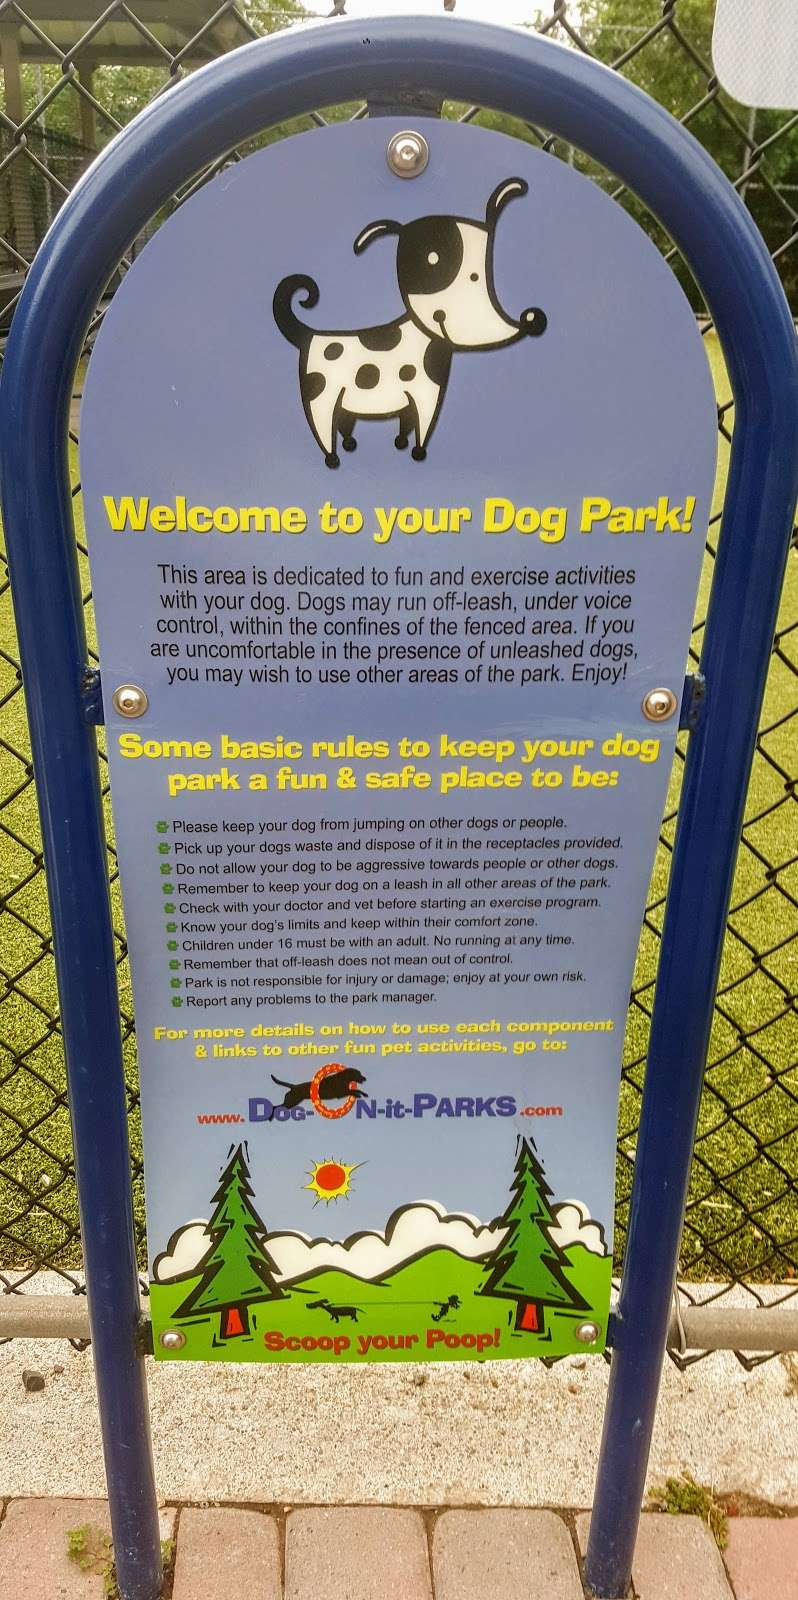 West New York Dog Park - park  | Photo 4 of 5 | Address: 6400-6498 John Fitzgerald Kennedy Blvd, West New York, NJ 07093, USA